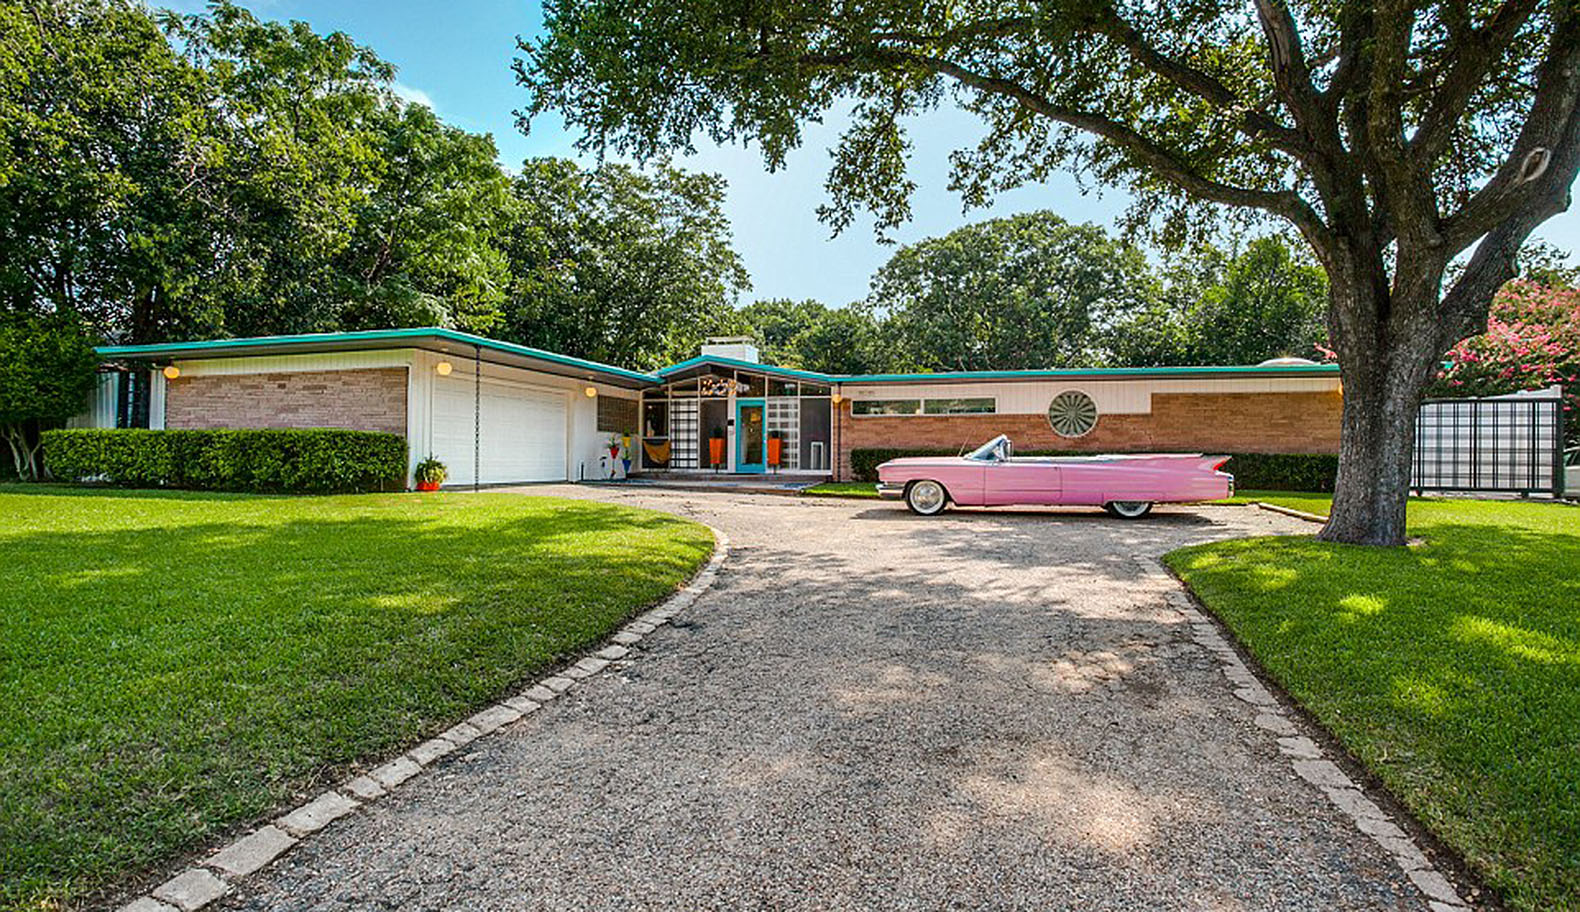 Charming Incredibly Preserved 1950s Time Capsule House In Dallas Could Be Yours